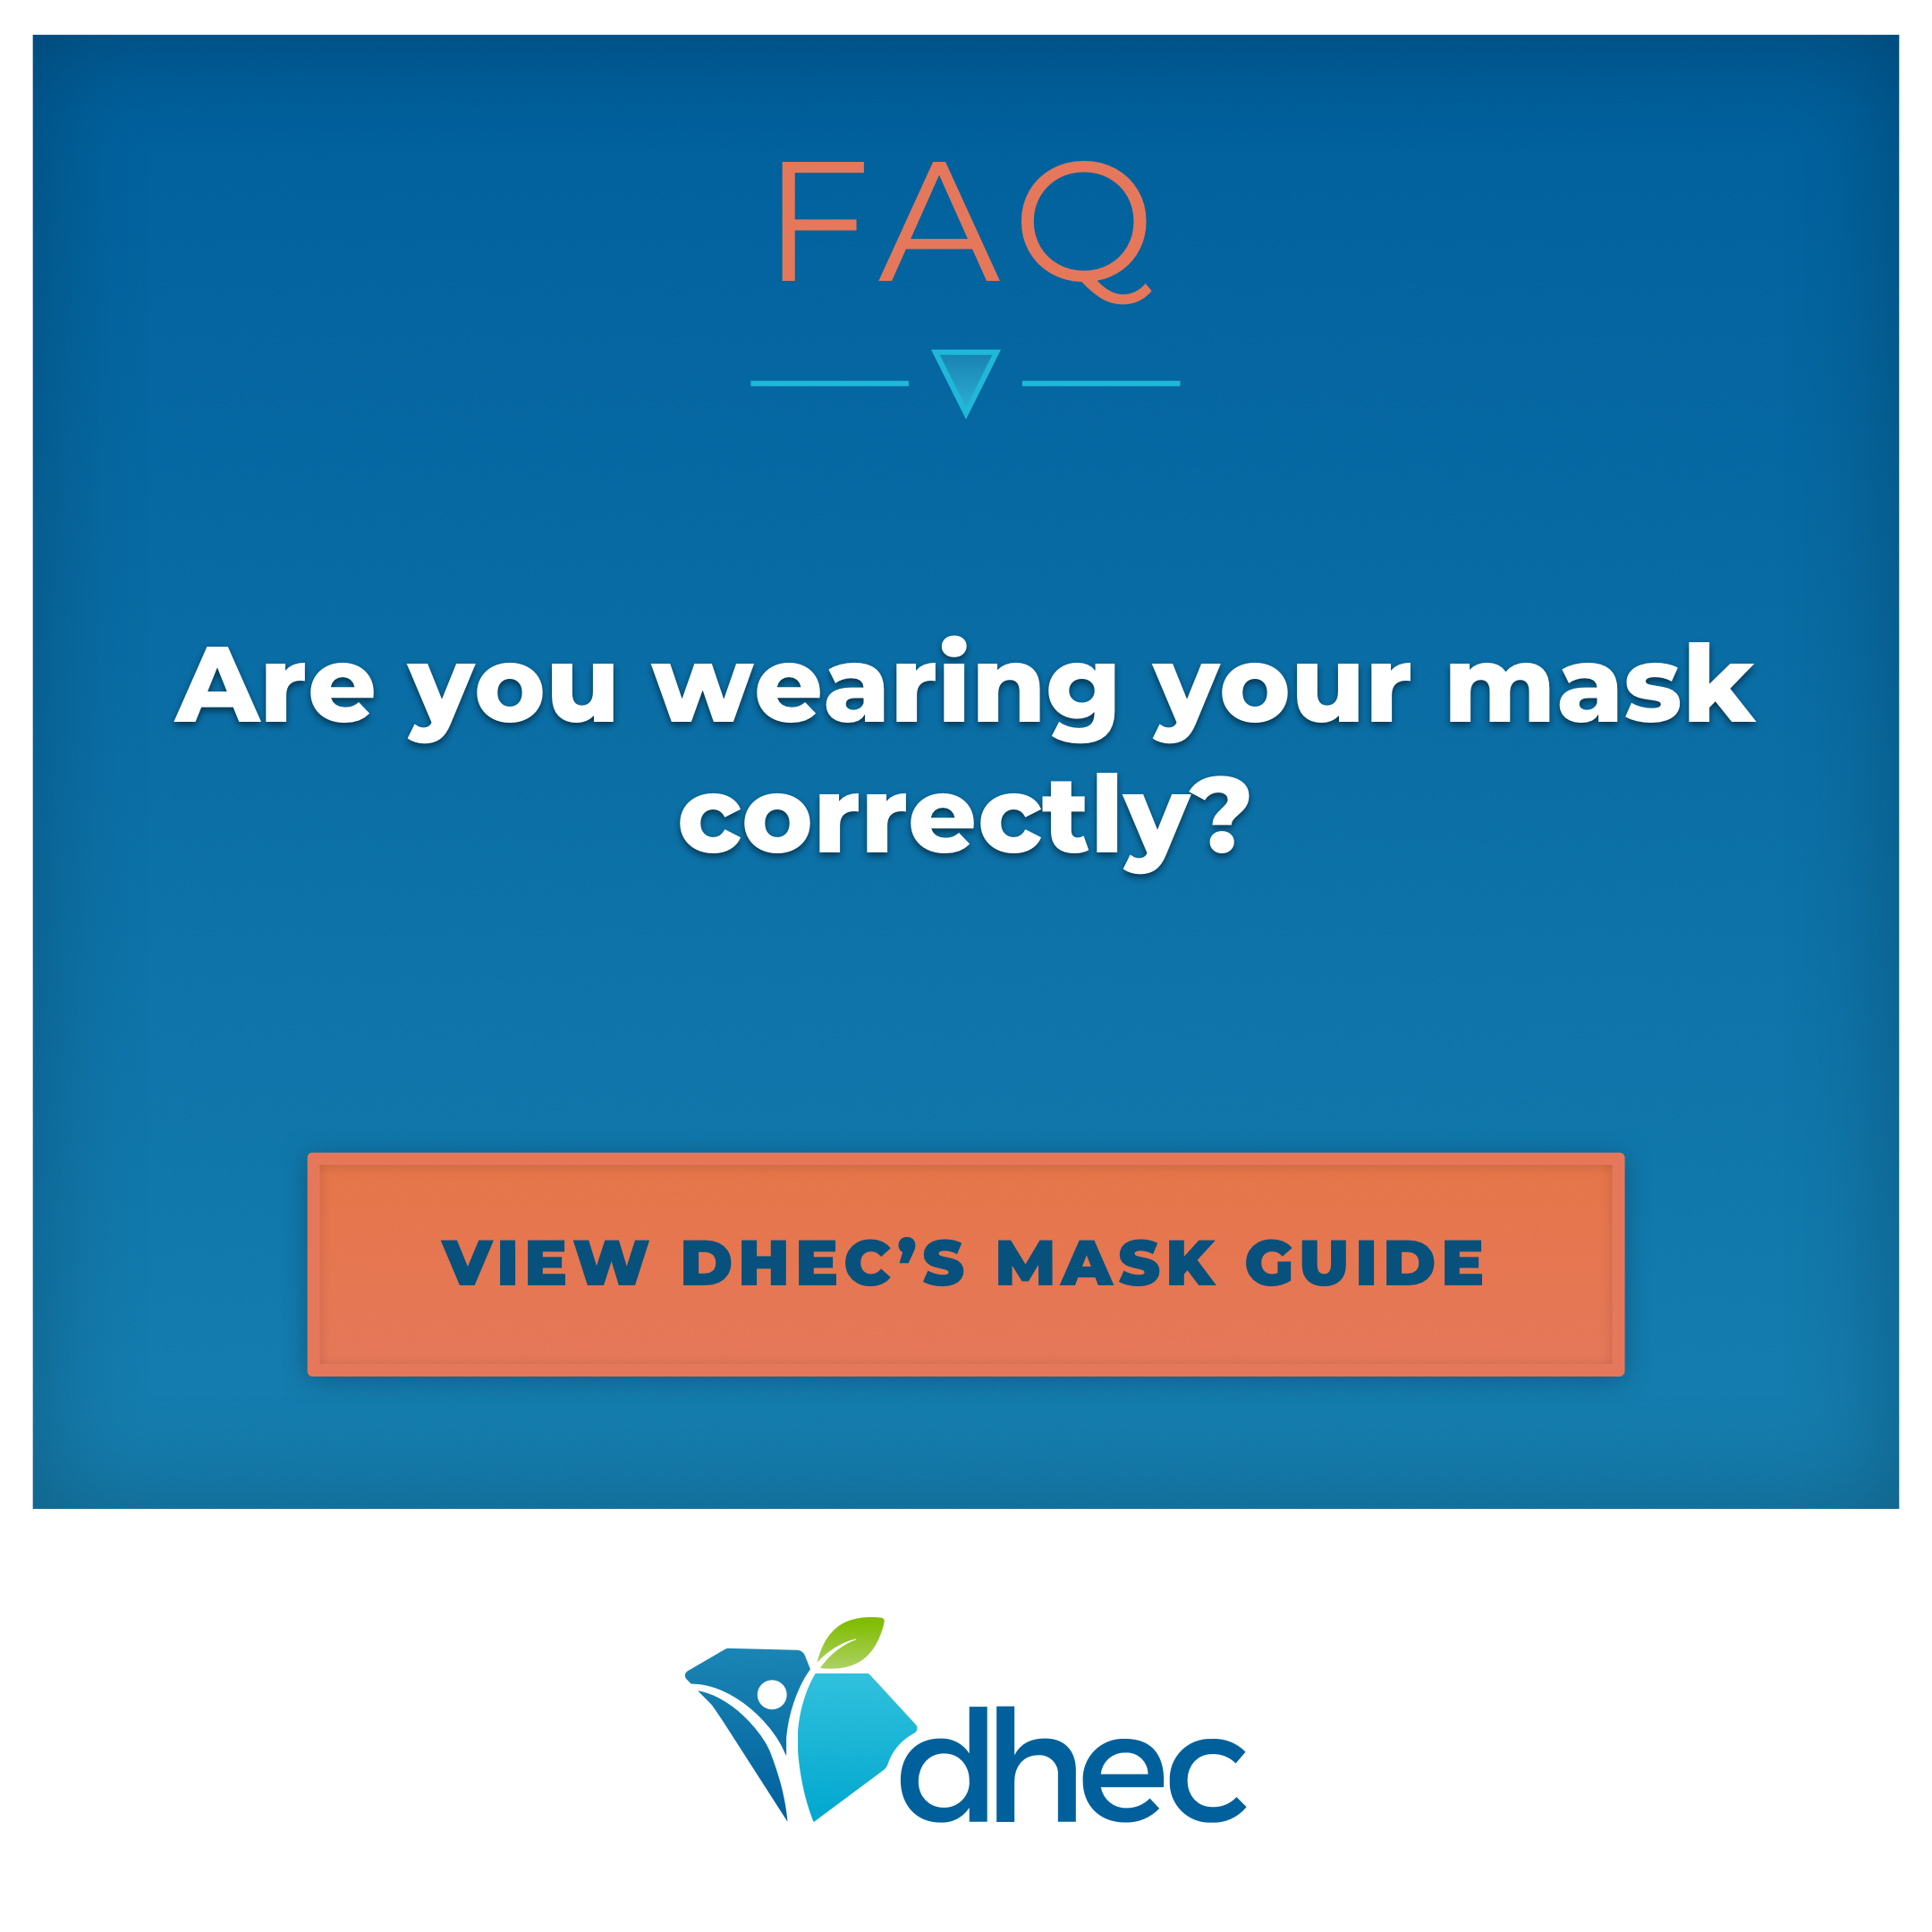 Are you wearing your mask correctly?